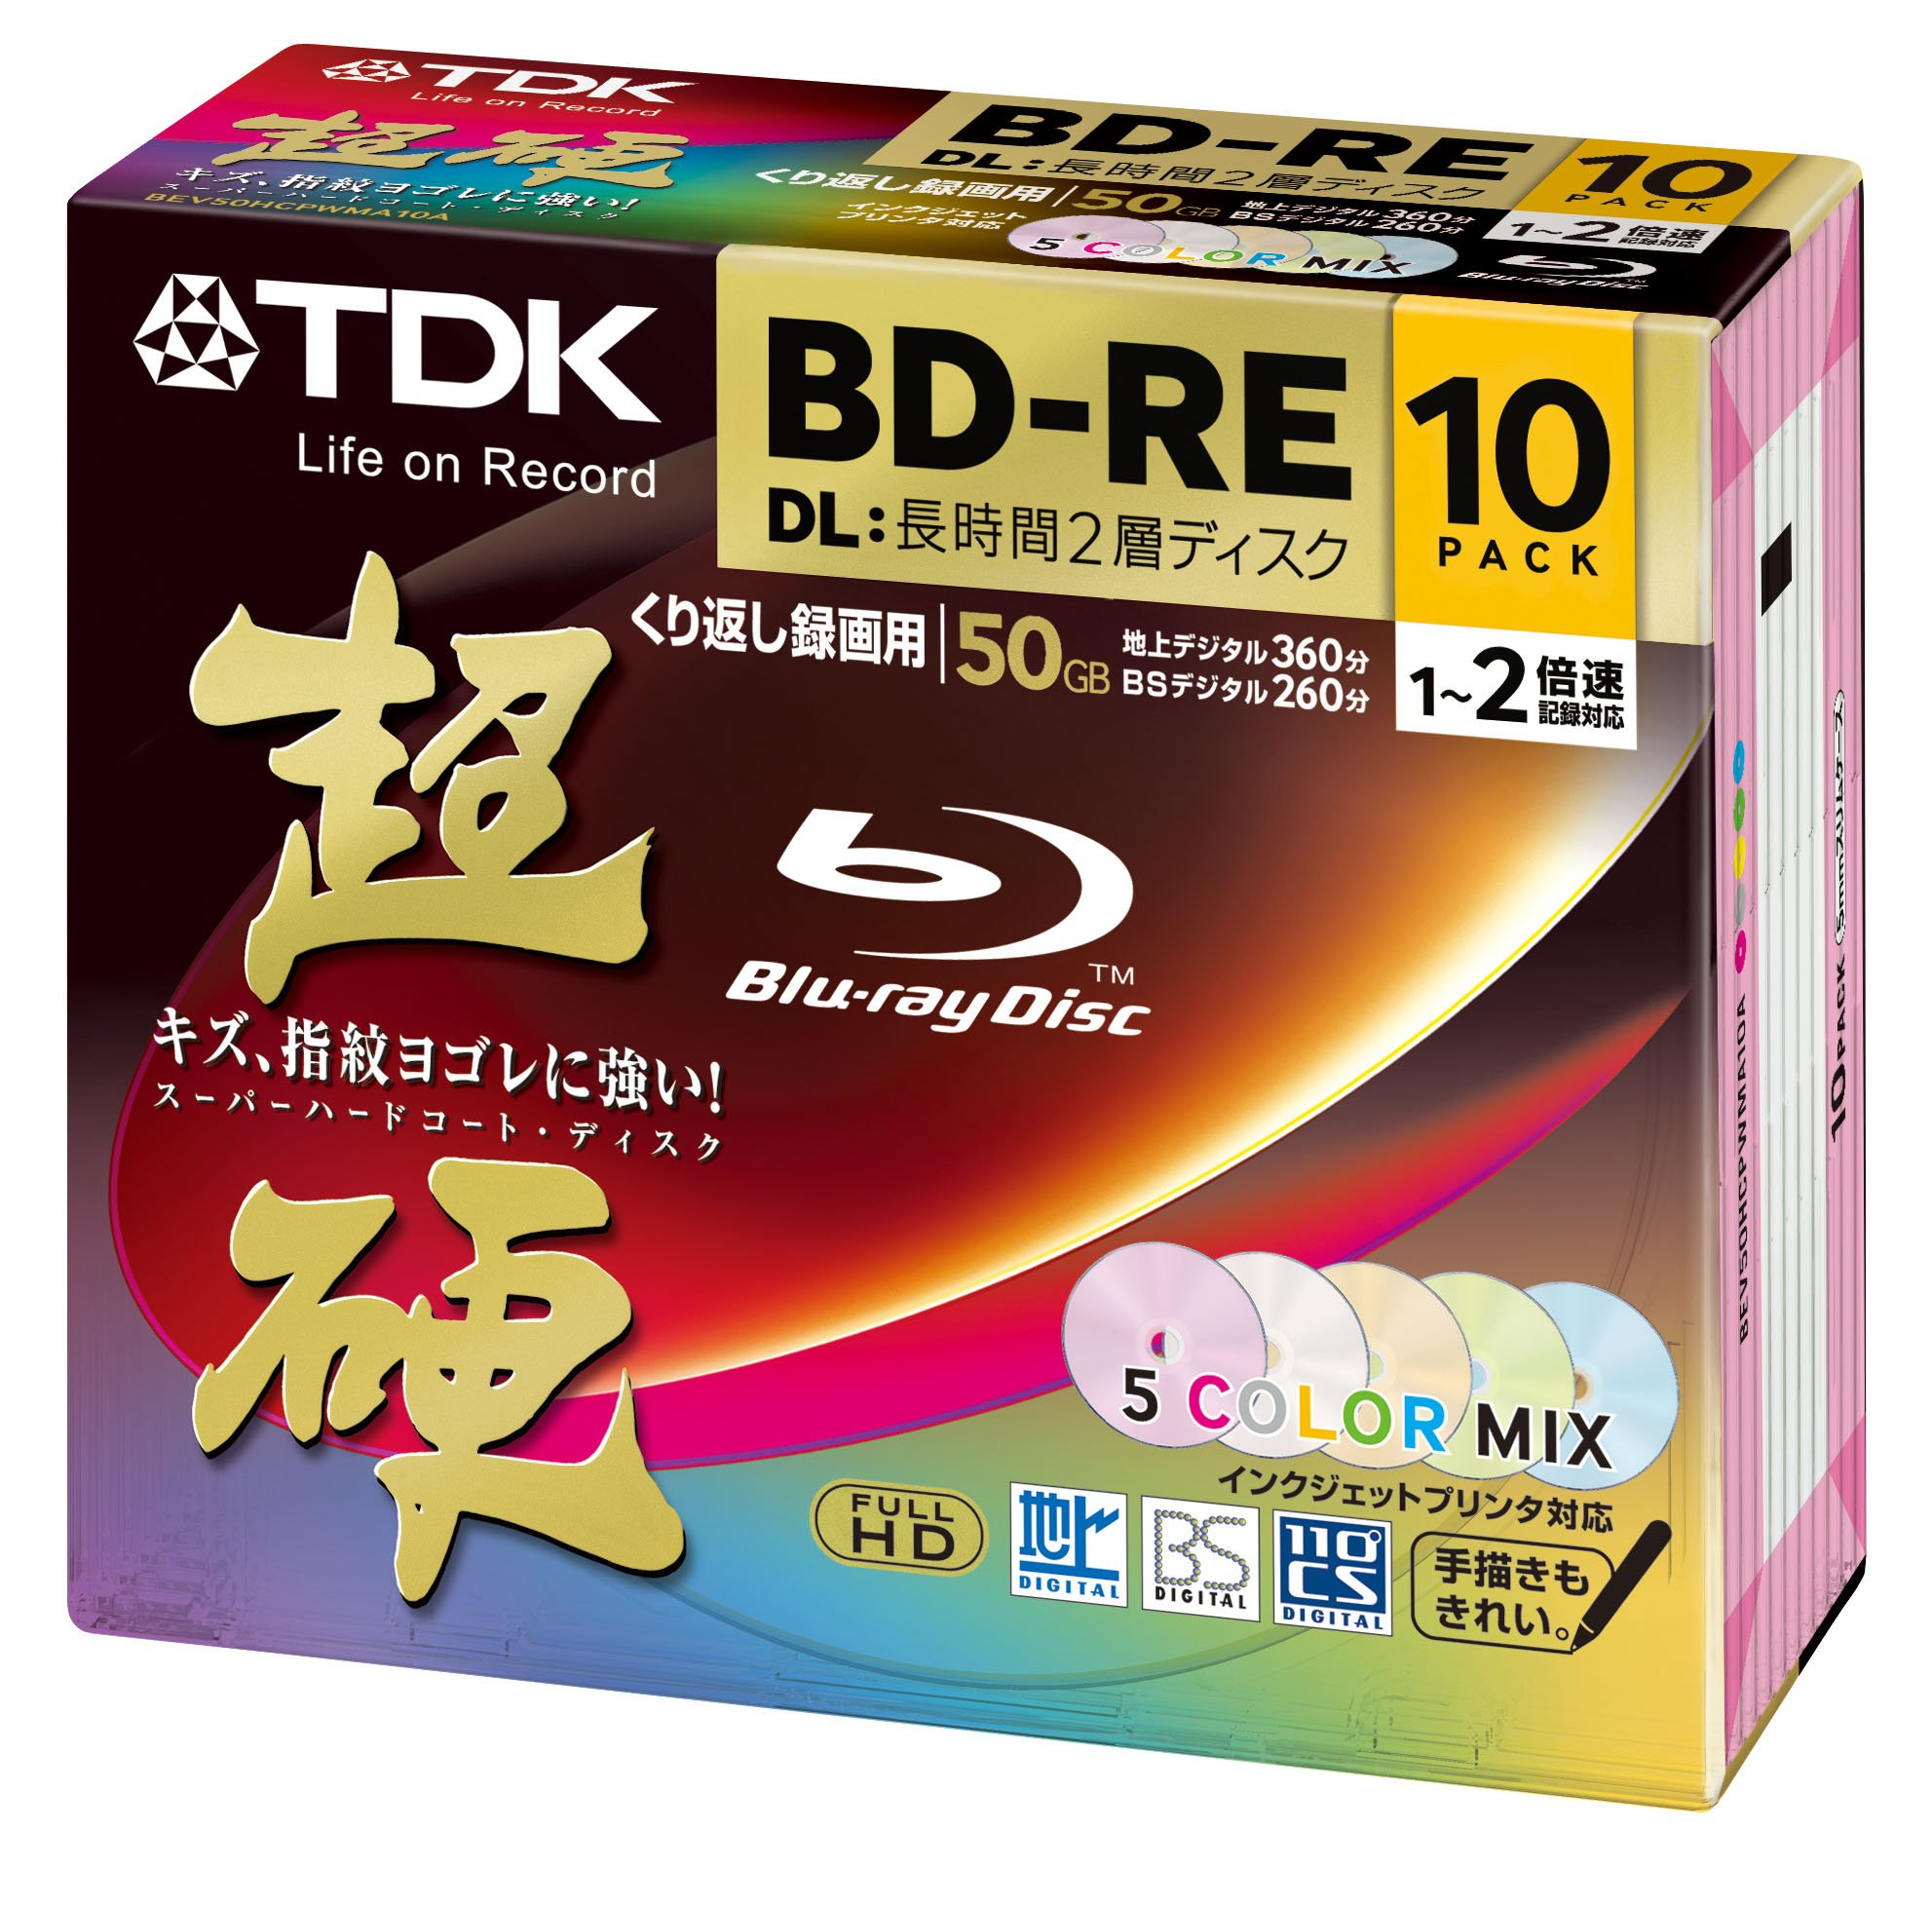 10 New TDK Bluray Discs 50 GB BD-RE 2X Speed Rewritable Blu-Ray Video Color Mix Inkjet Printable by TDK